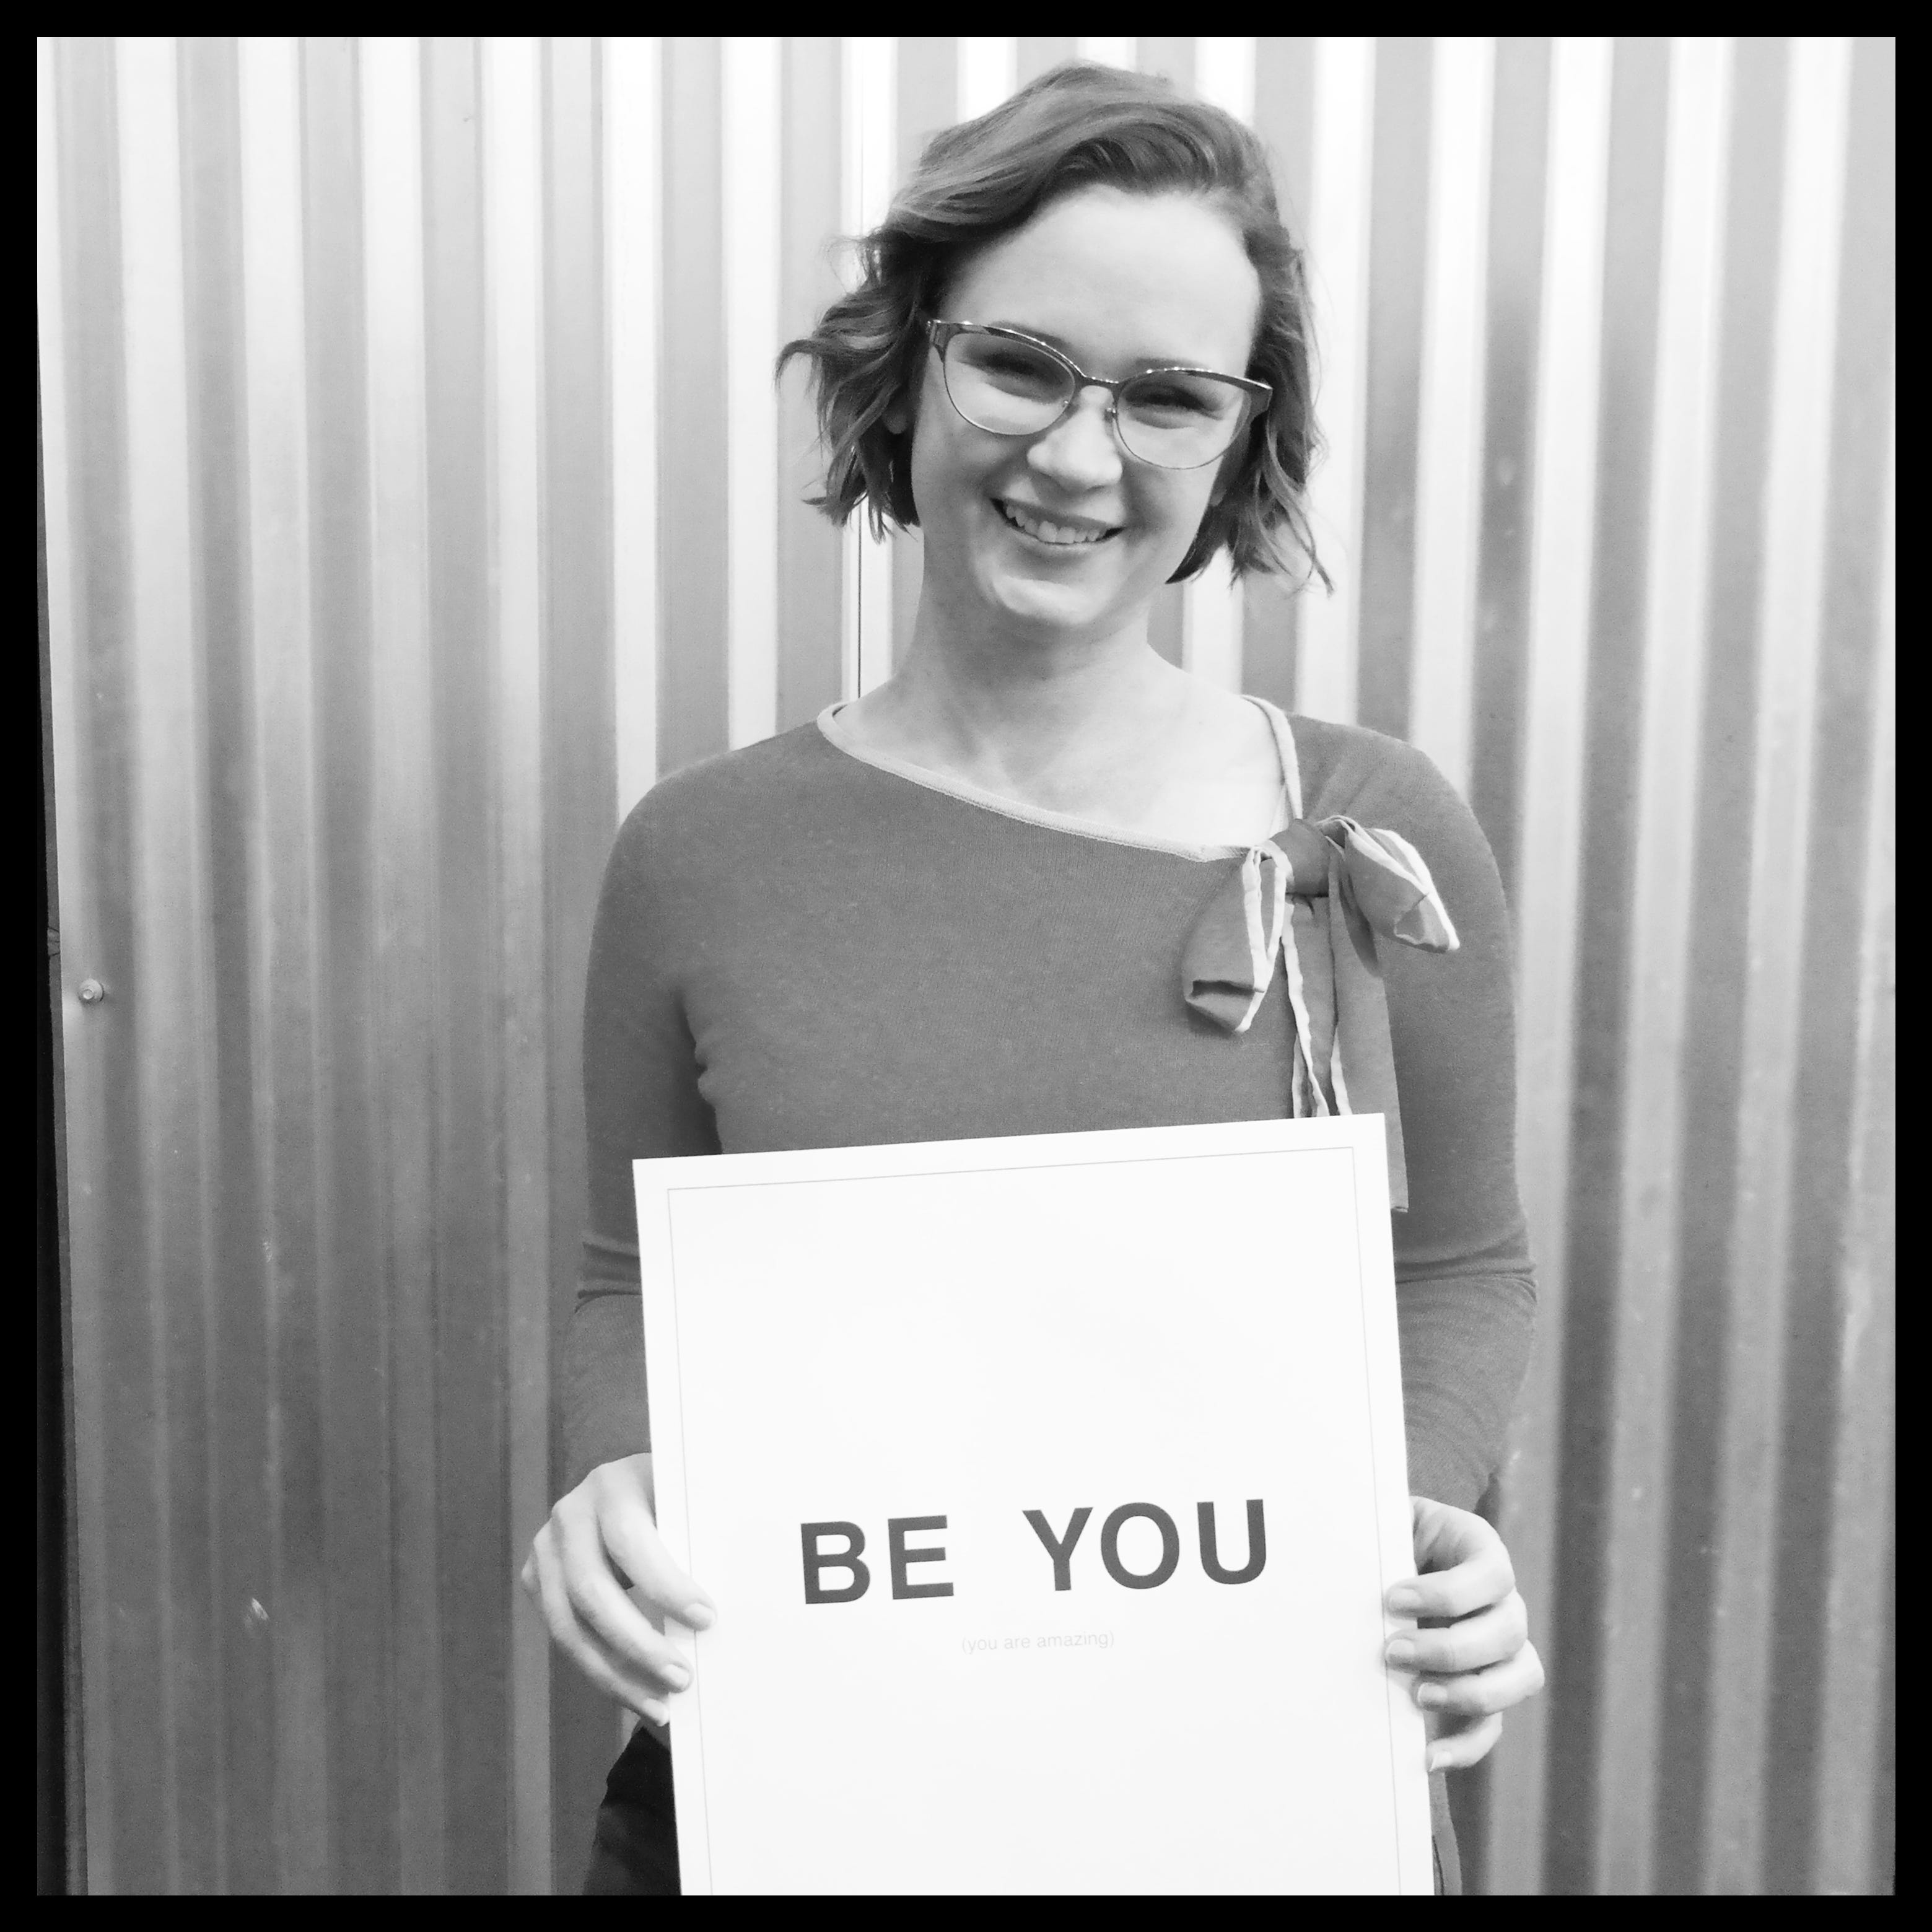 Be You: April Courville